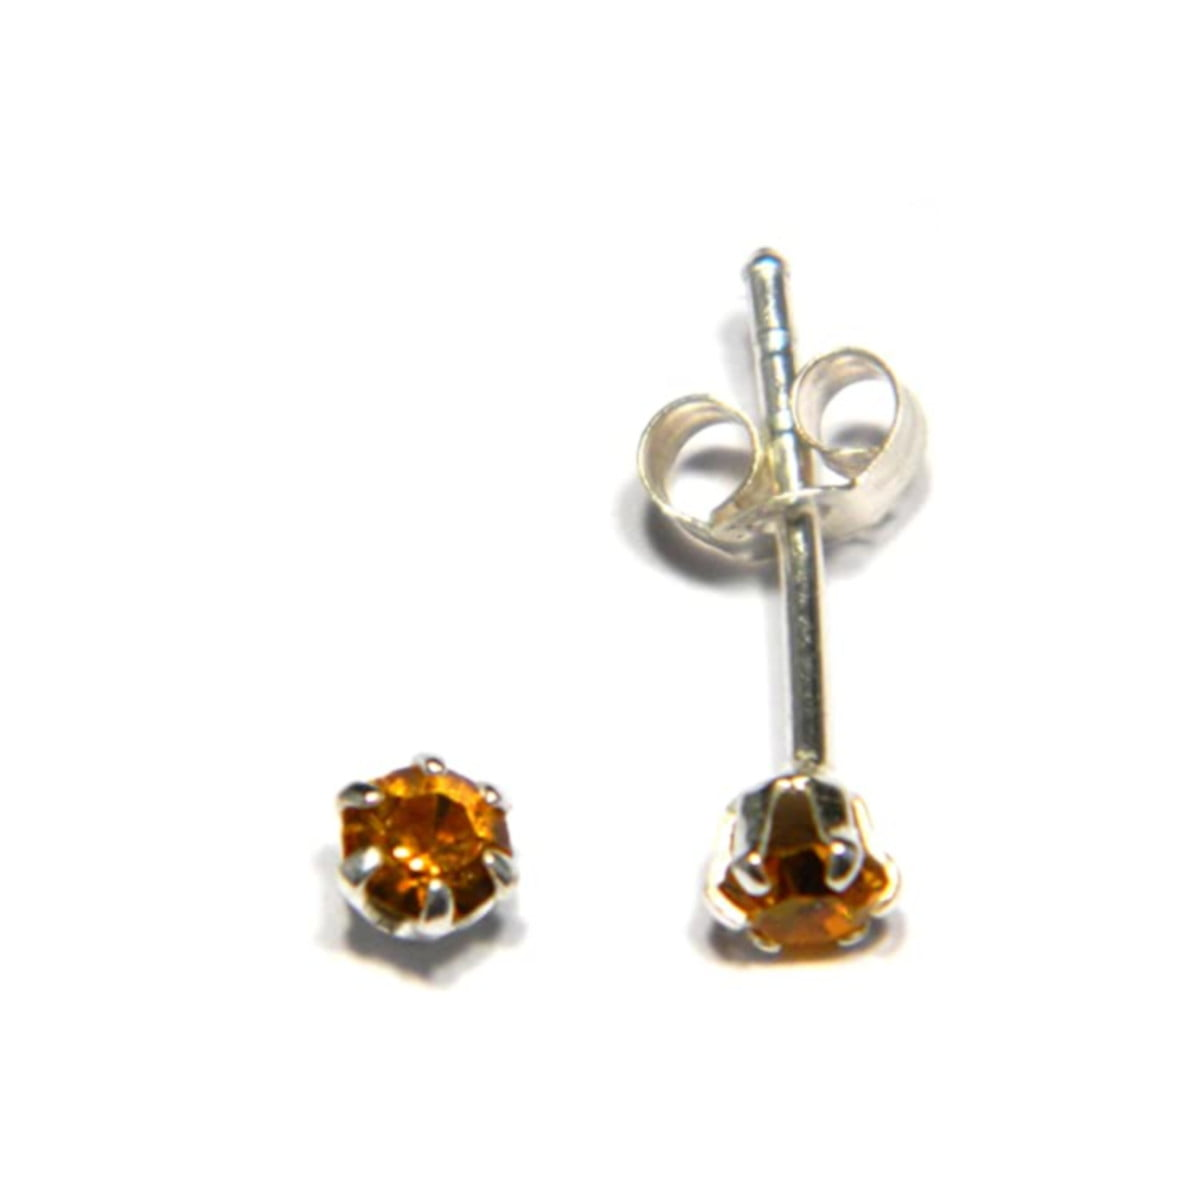 3 mm amber coloured crystal stud round solitaire earrings in sterling silver